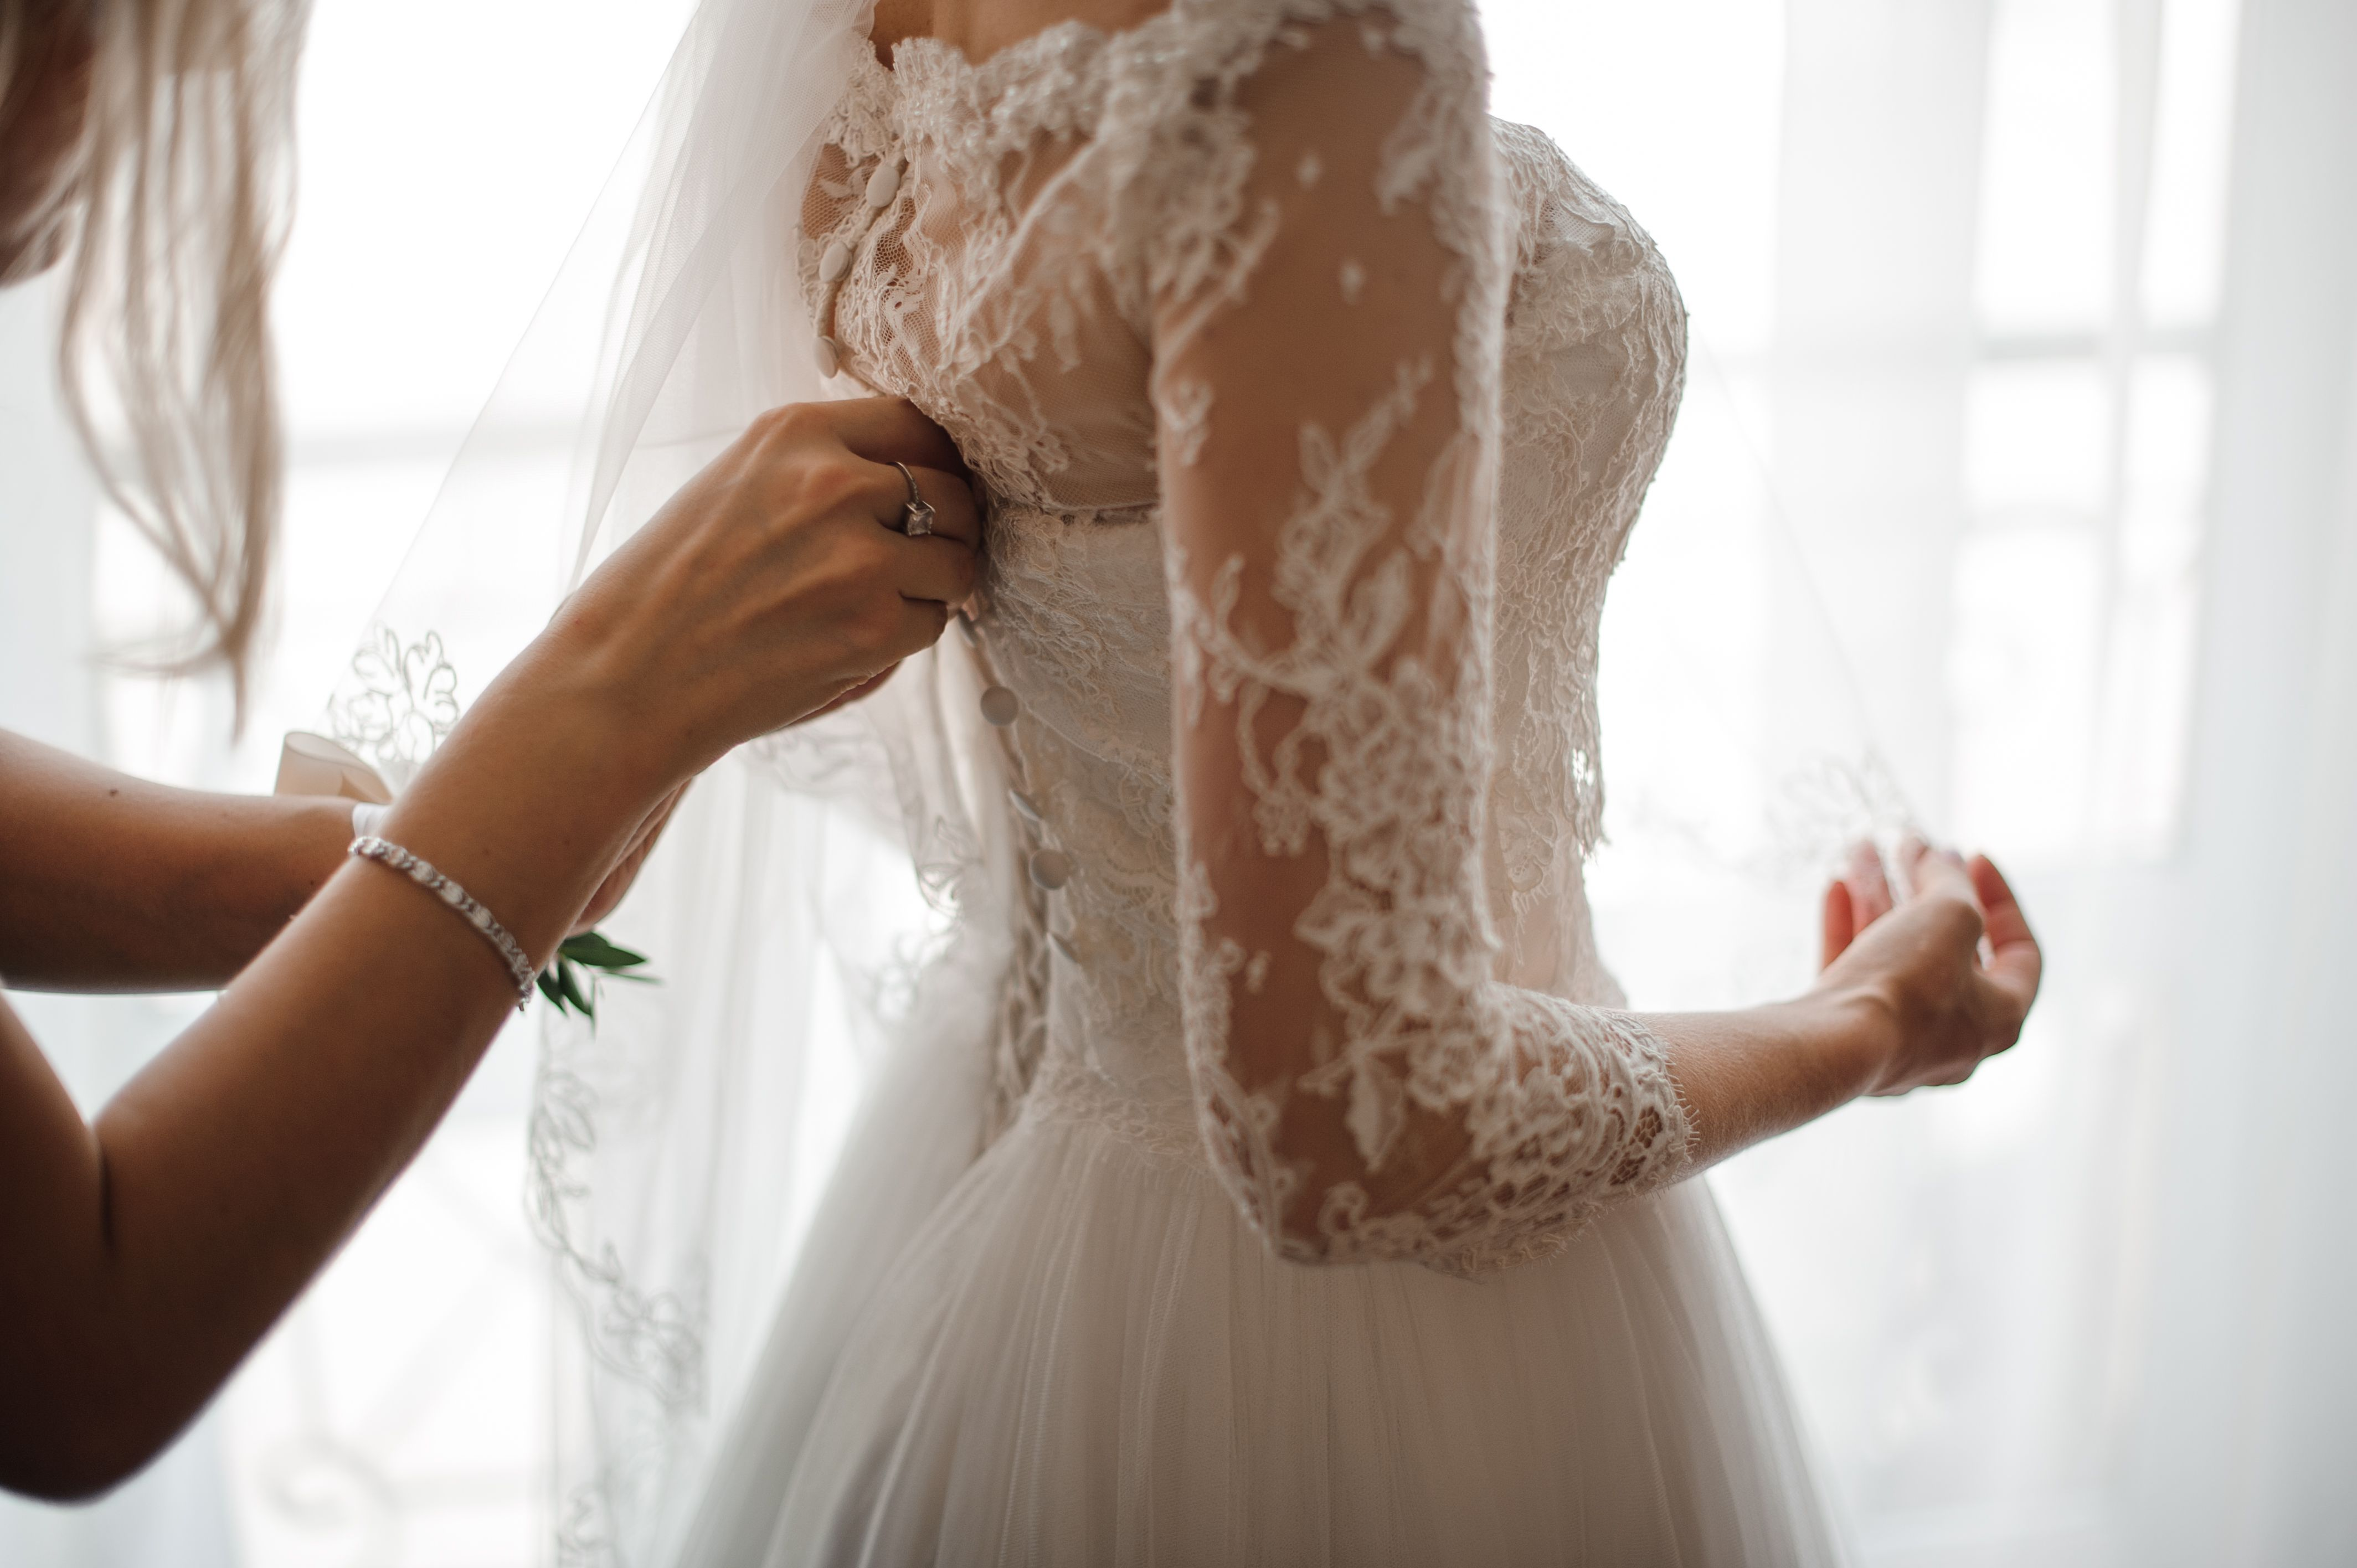 With bridal cosmetic surgery on the rise, here's what you need to know